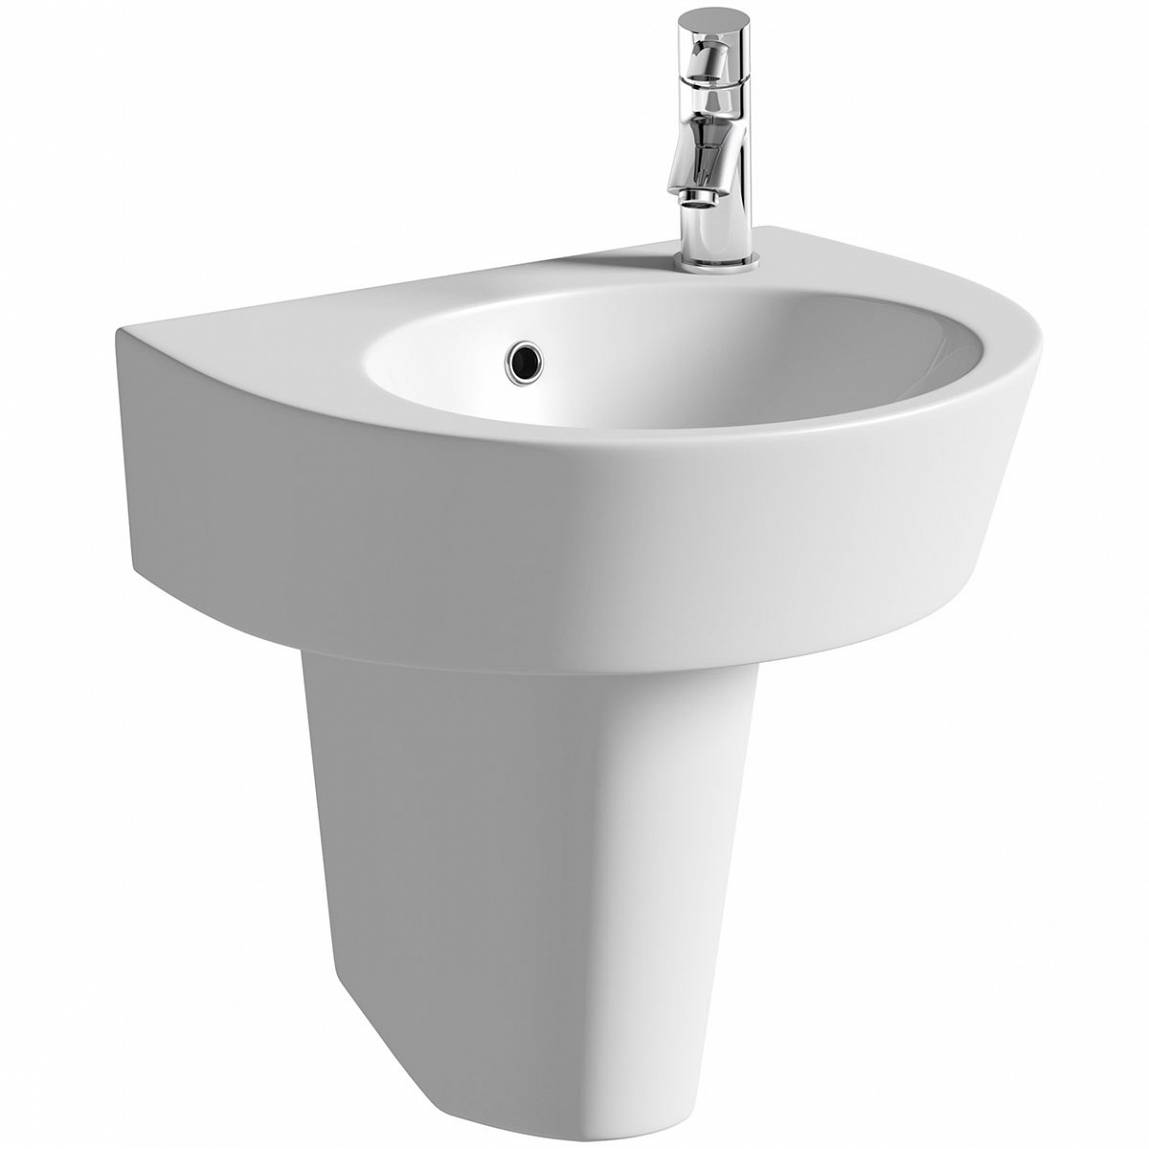 Image of Ancona 1TH 550mm Basin & Semi Pedestal PLUS Waste